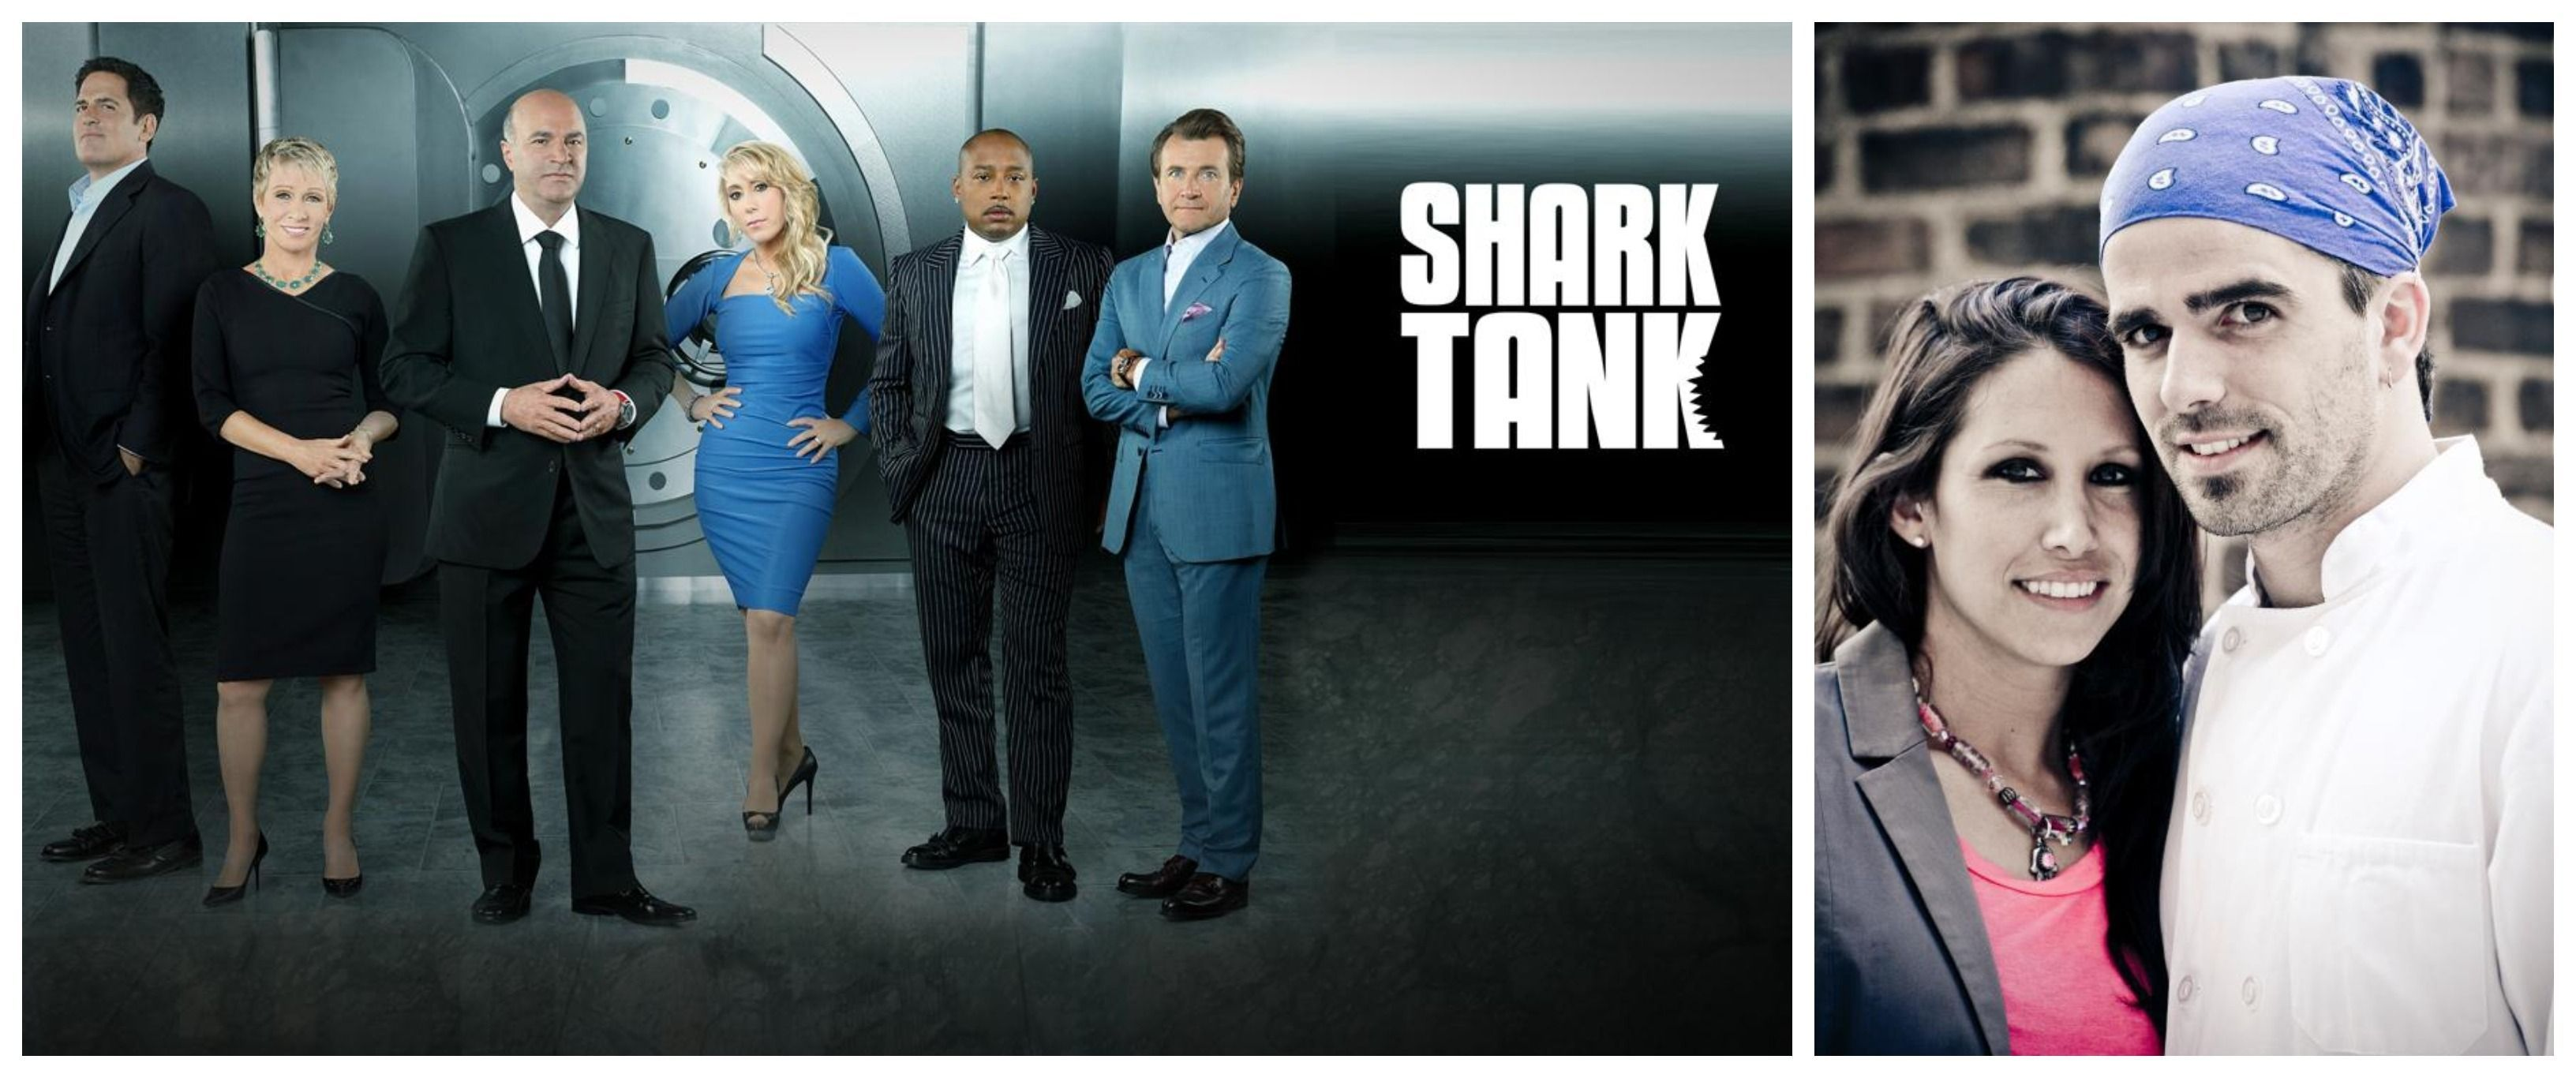 How to Get on Shark Tank picture